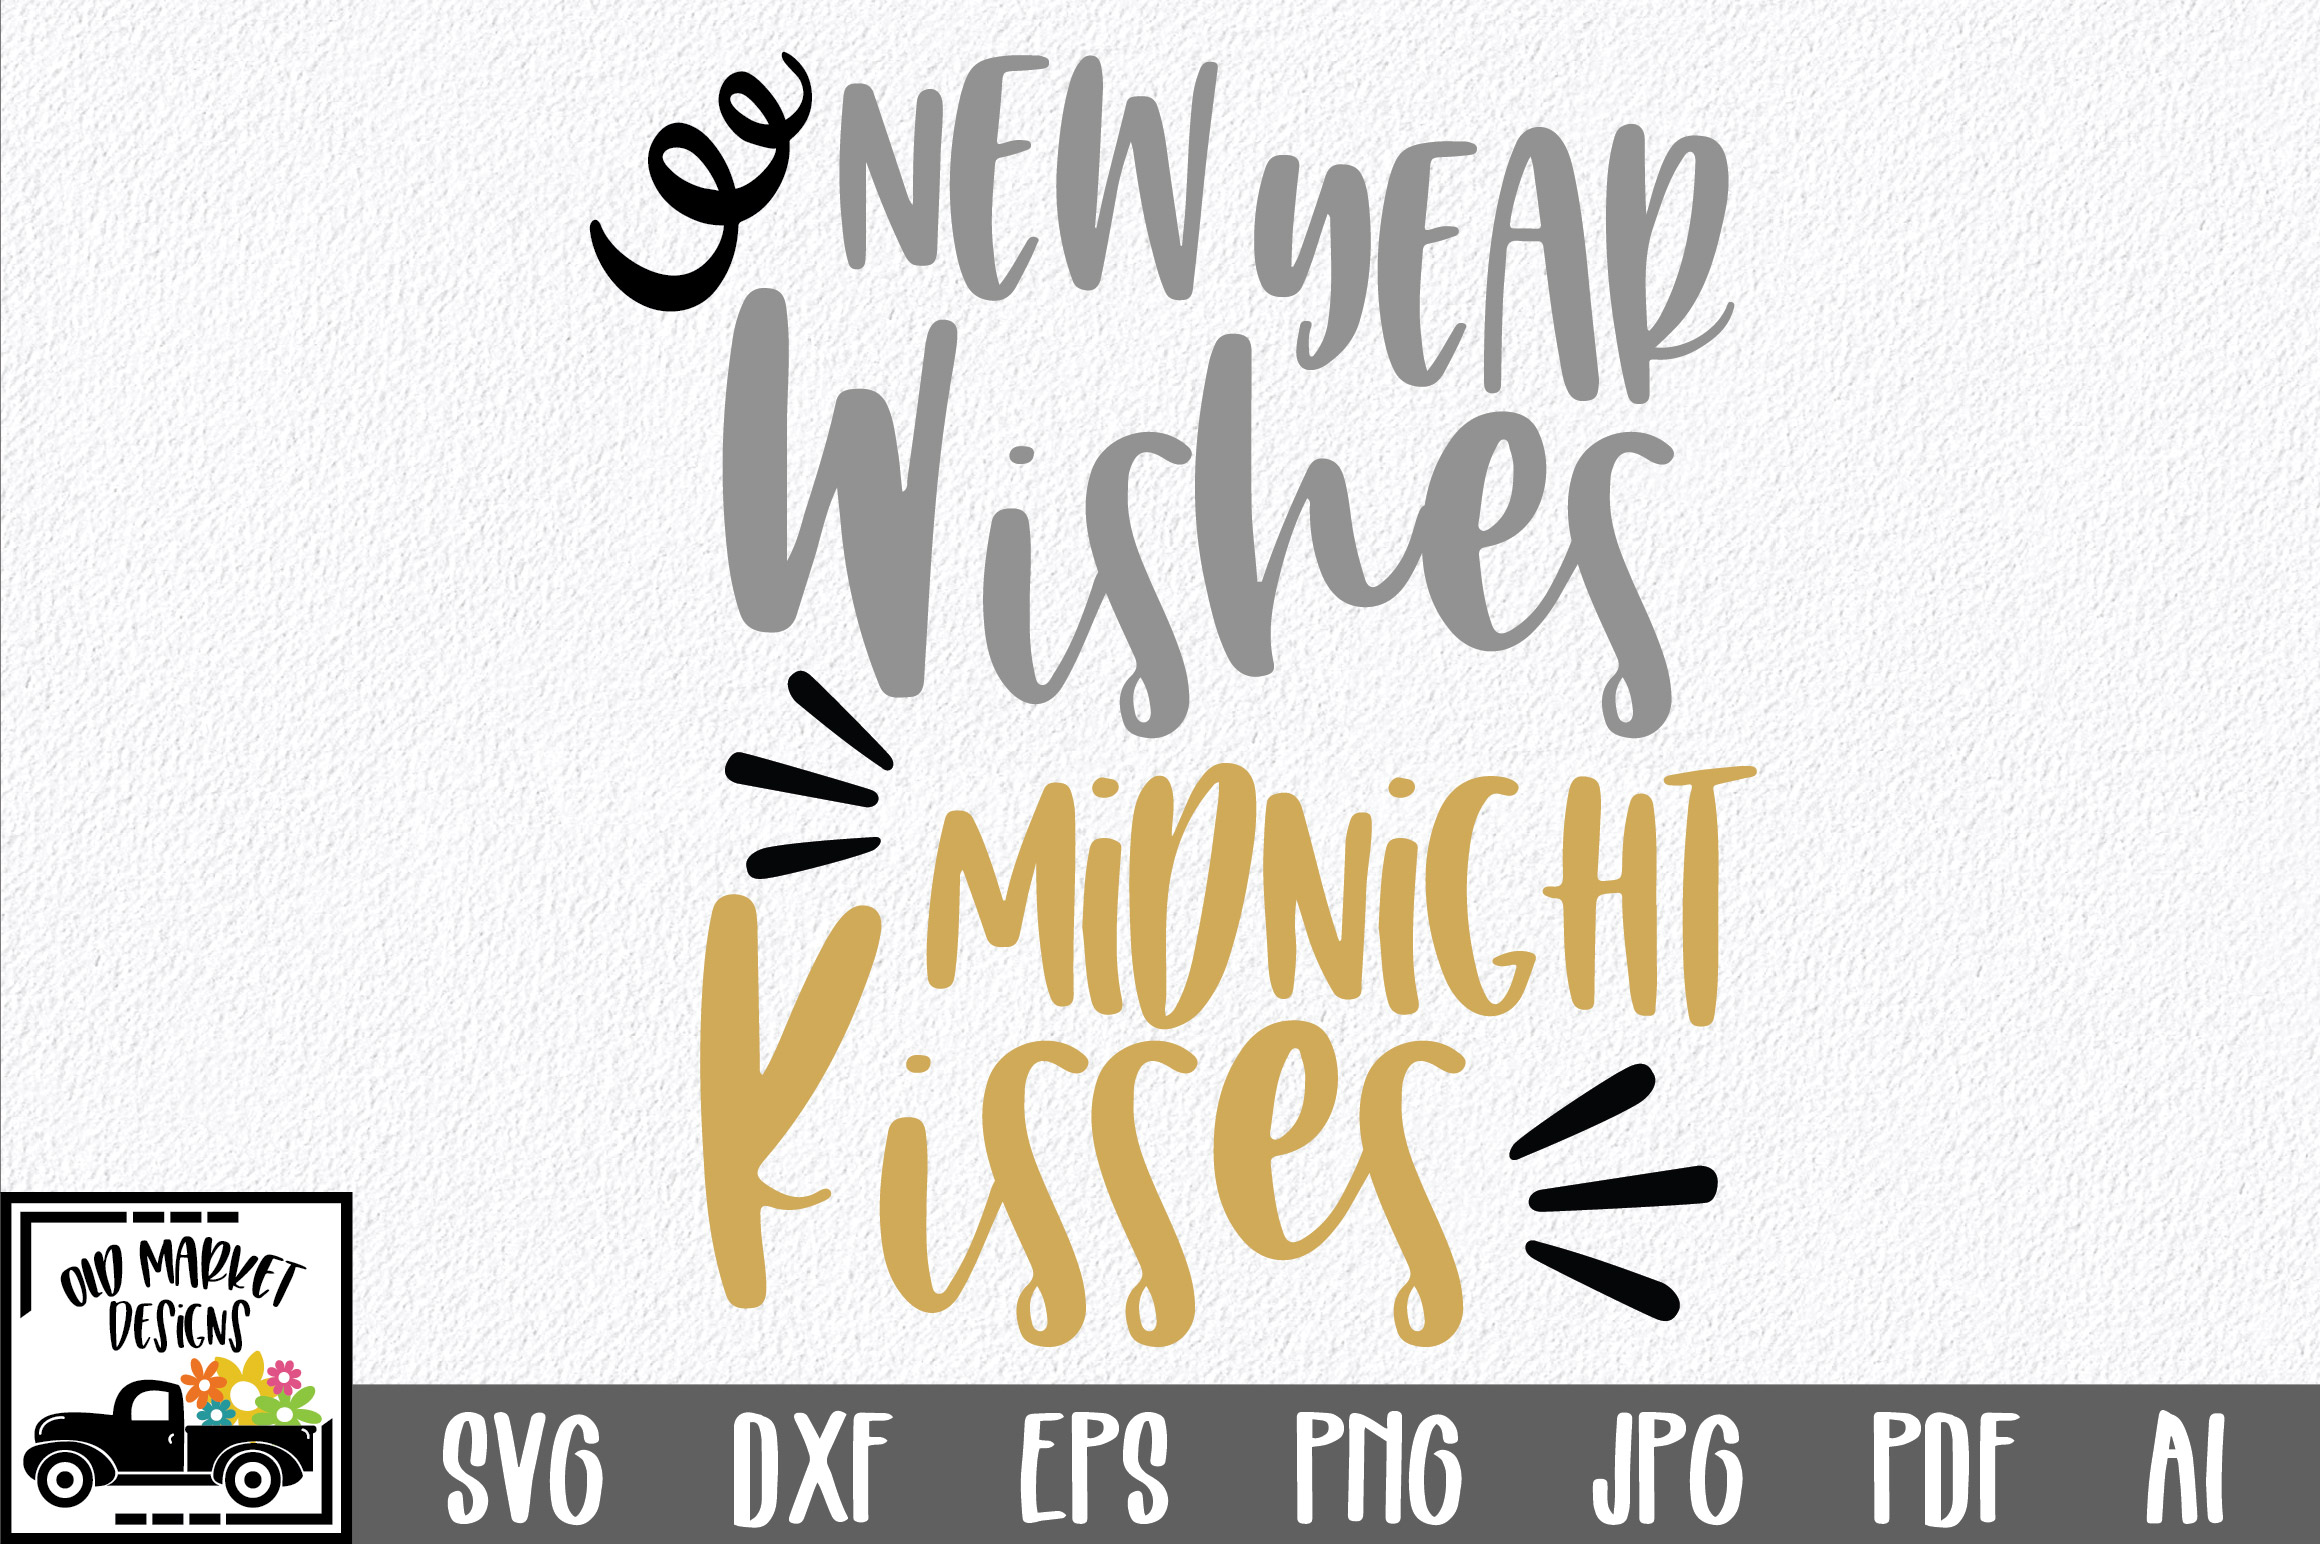 Download Free New Year Wishes Midnight Kisses Svg Cut File Graphic By Oldmarketdesigns Creative Fabrica for Cricut Explore, Silhouette and other cutting machines.